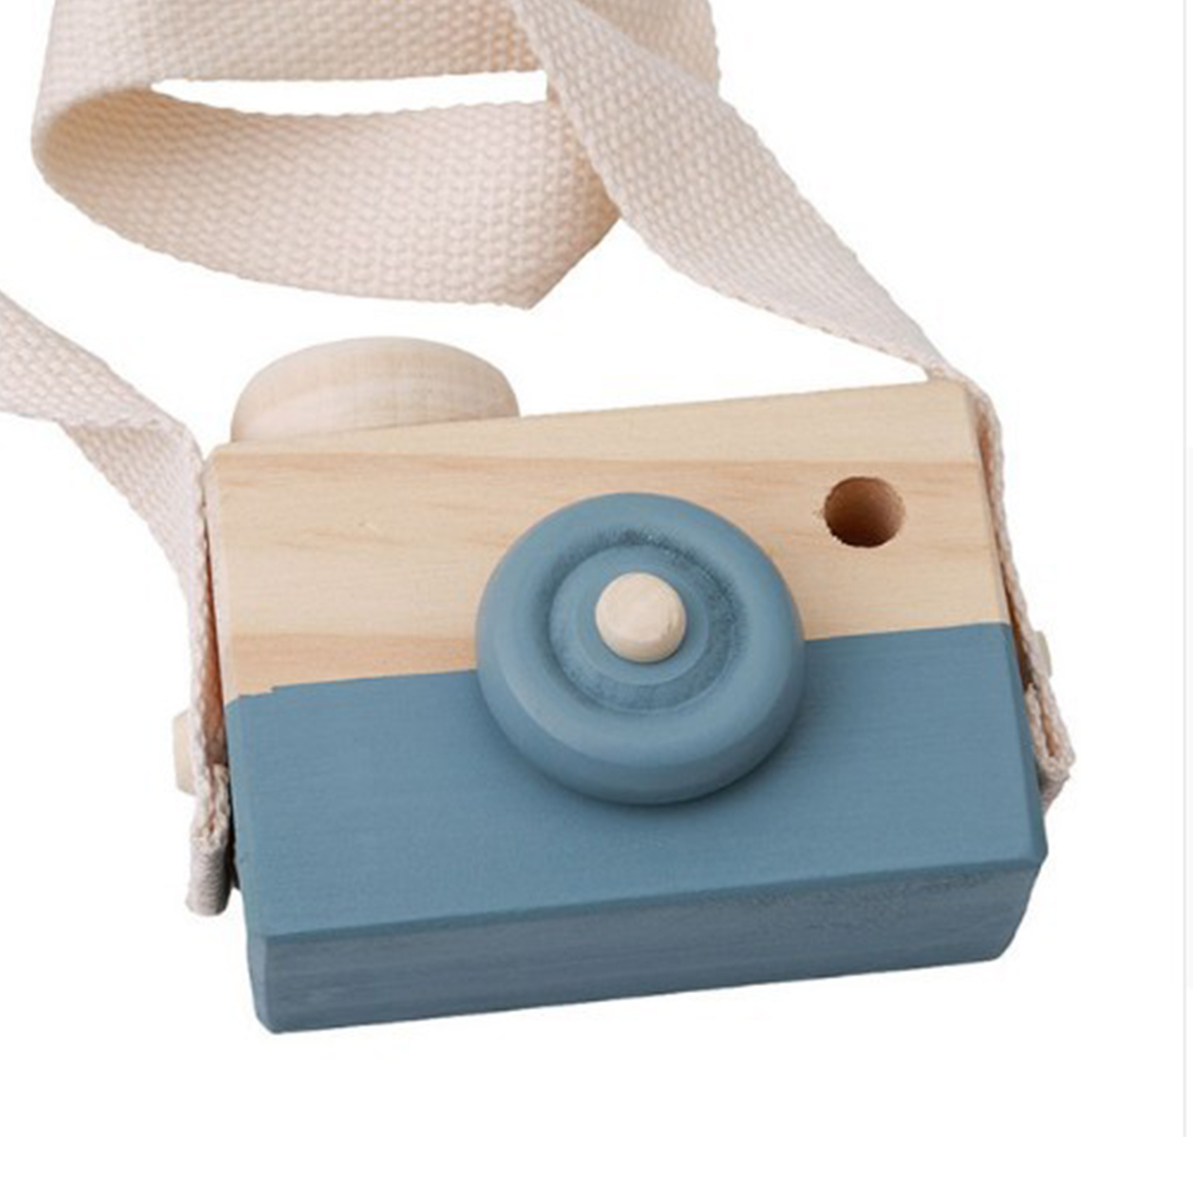 Wearable Children's Wooden Camera Ornaments Mini Portable Educational Toys Photography Cute Props